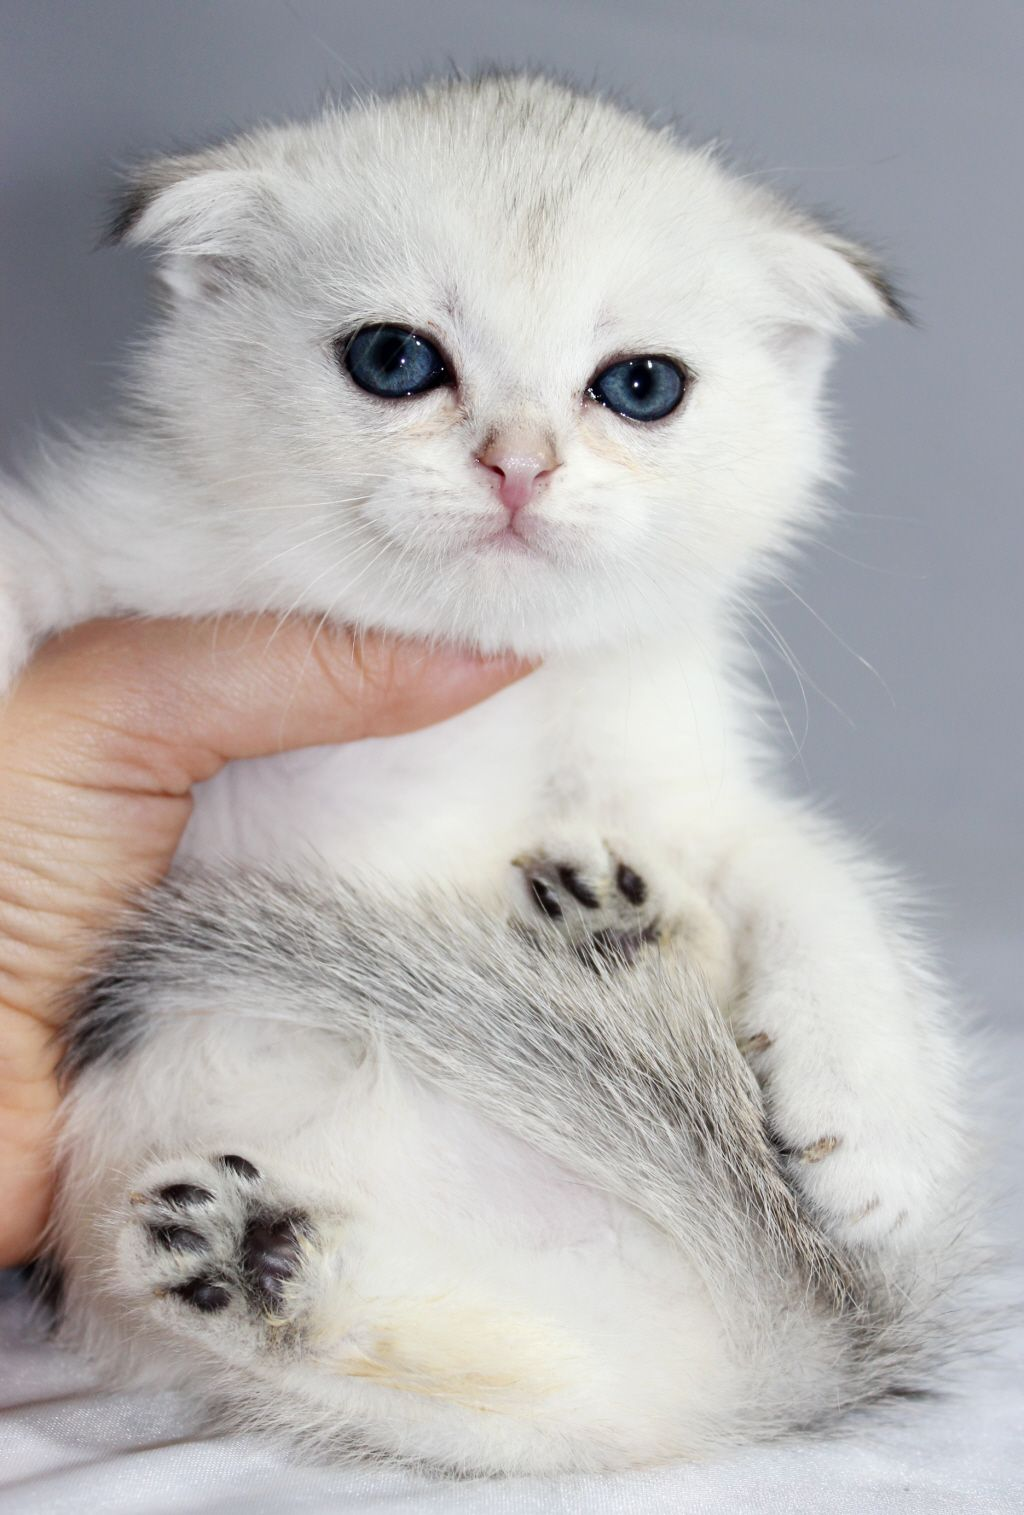 Seez Me Be Justs A Retail Item Nows Dat Der Sellin Me And Meez Siblin S British Shorthair Kittens Cat Scottish Fold Cute Animals